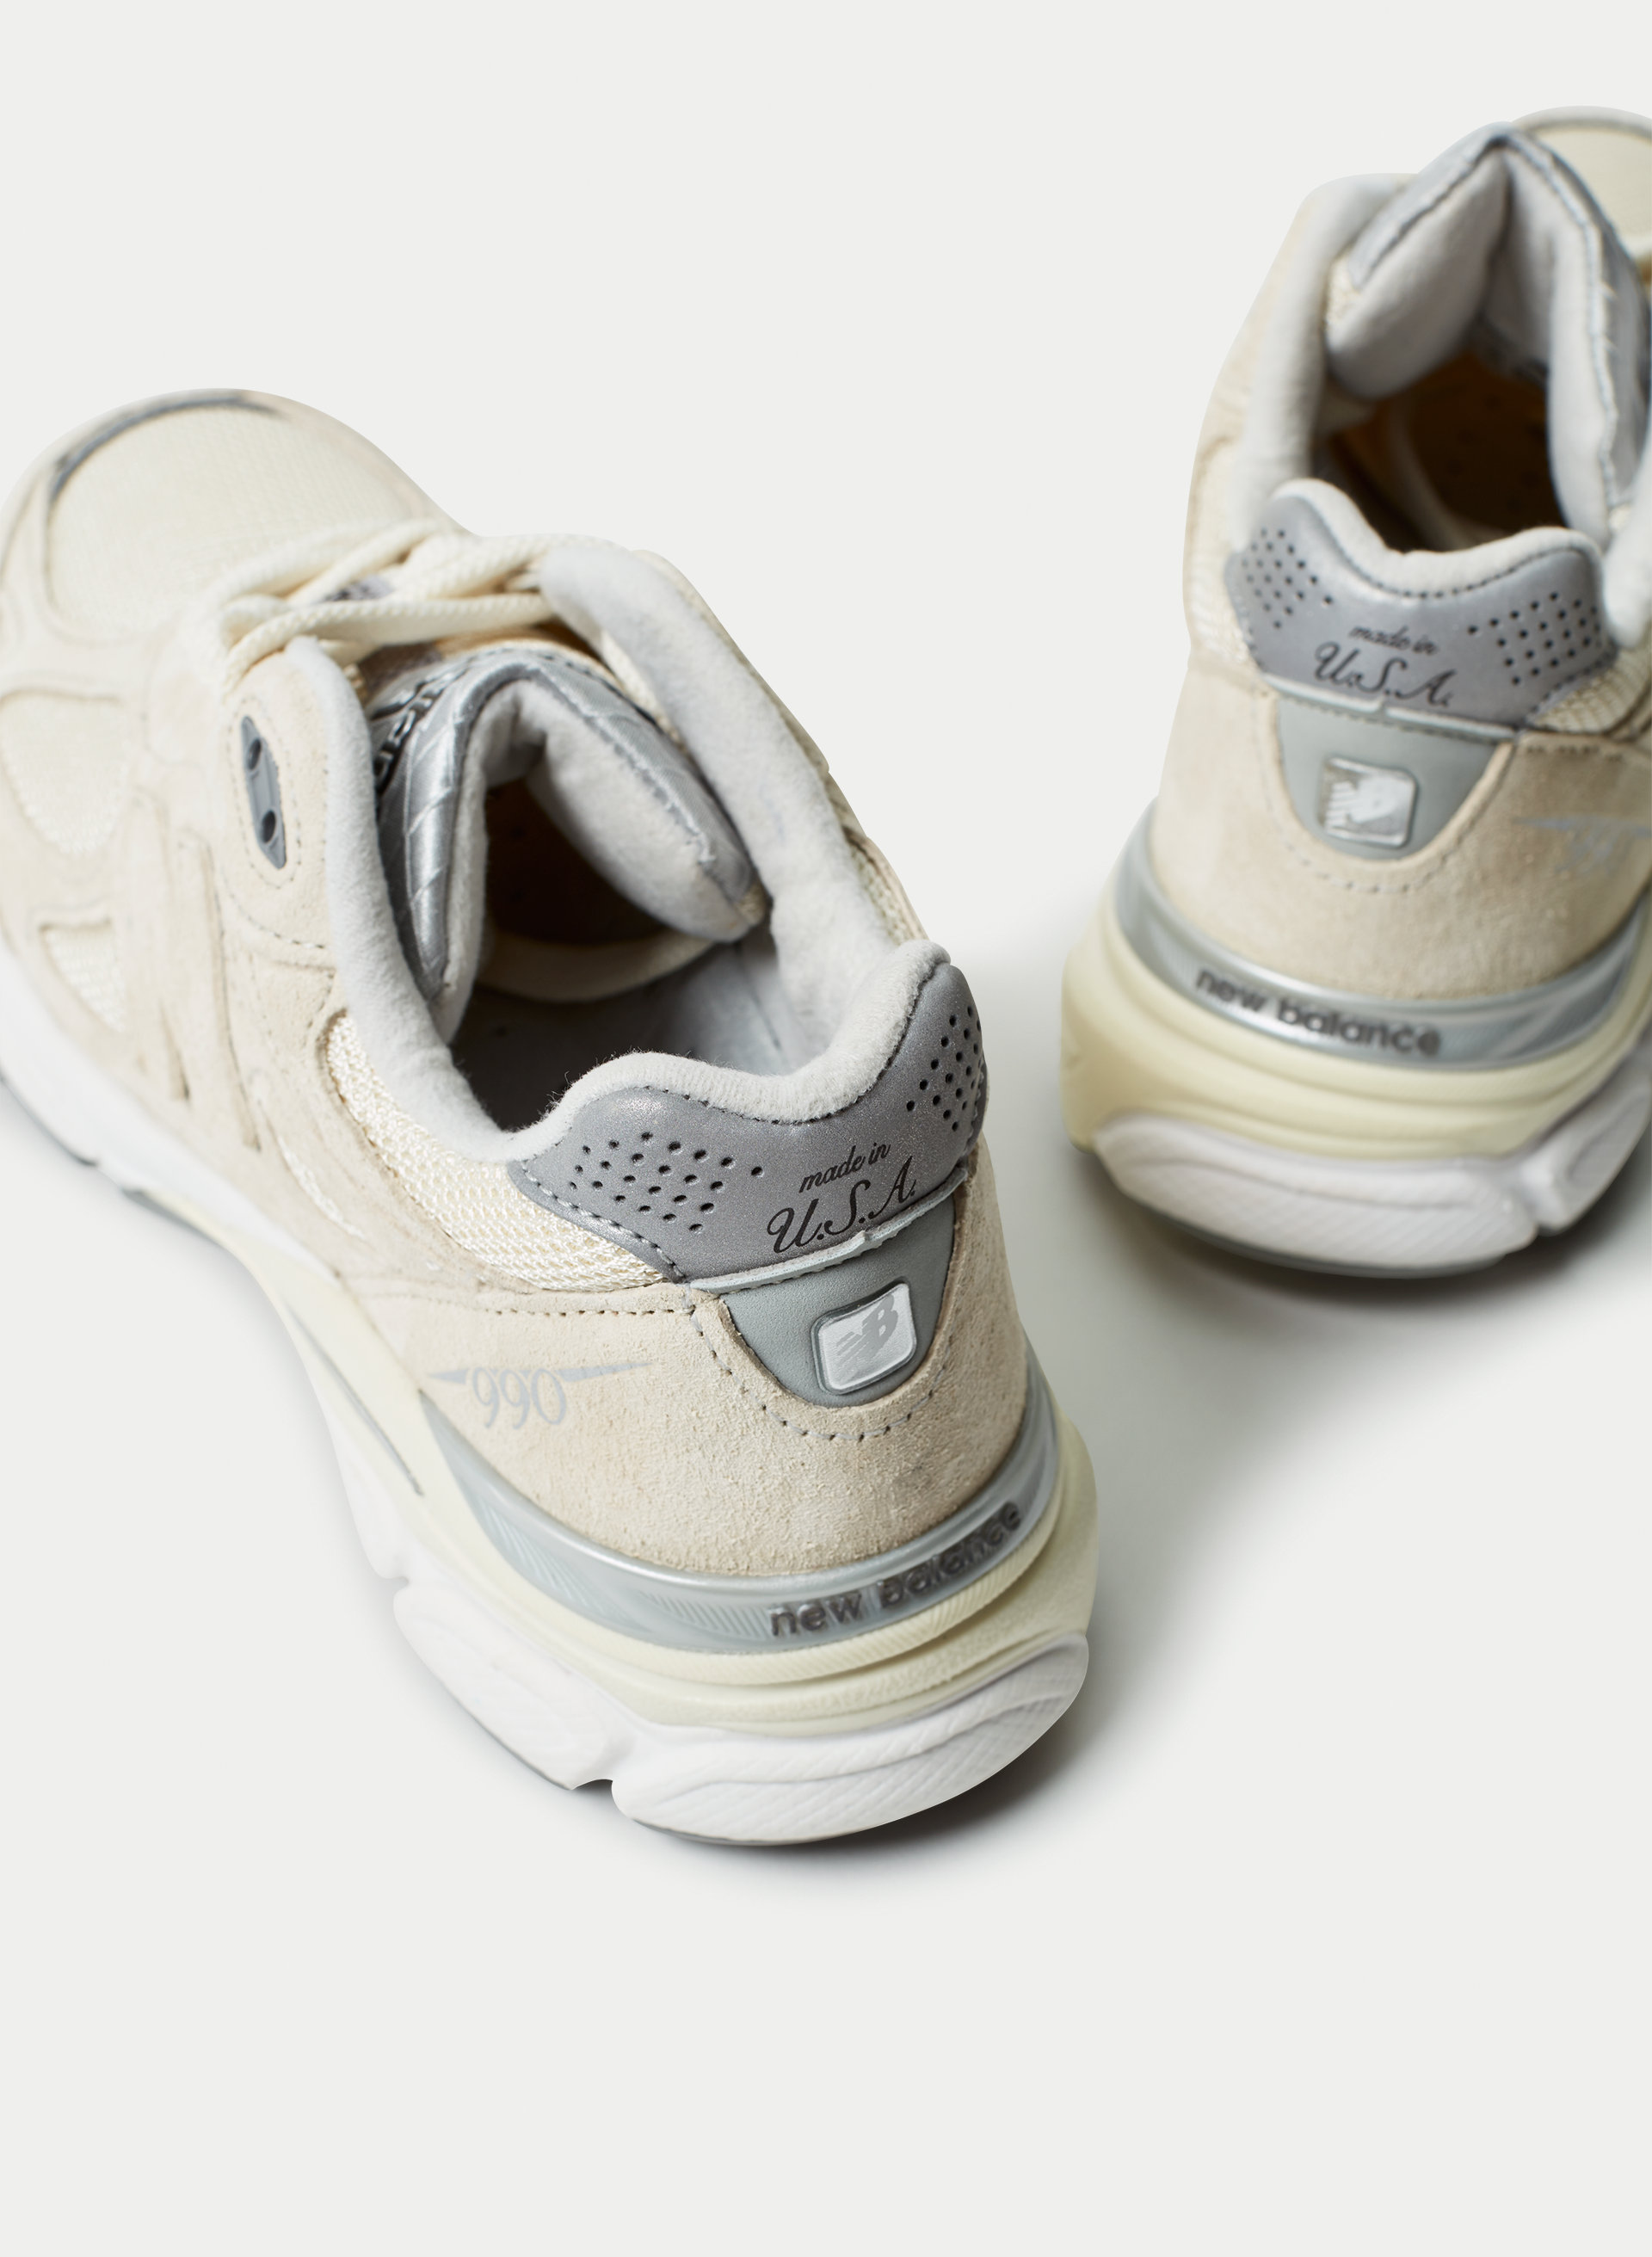 reputable site fa661 8d4da New Balance NEW BALANCE 990 V3 | Aritzia US